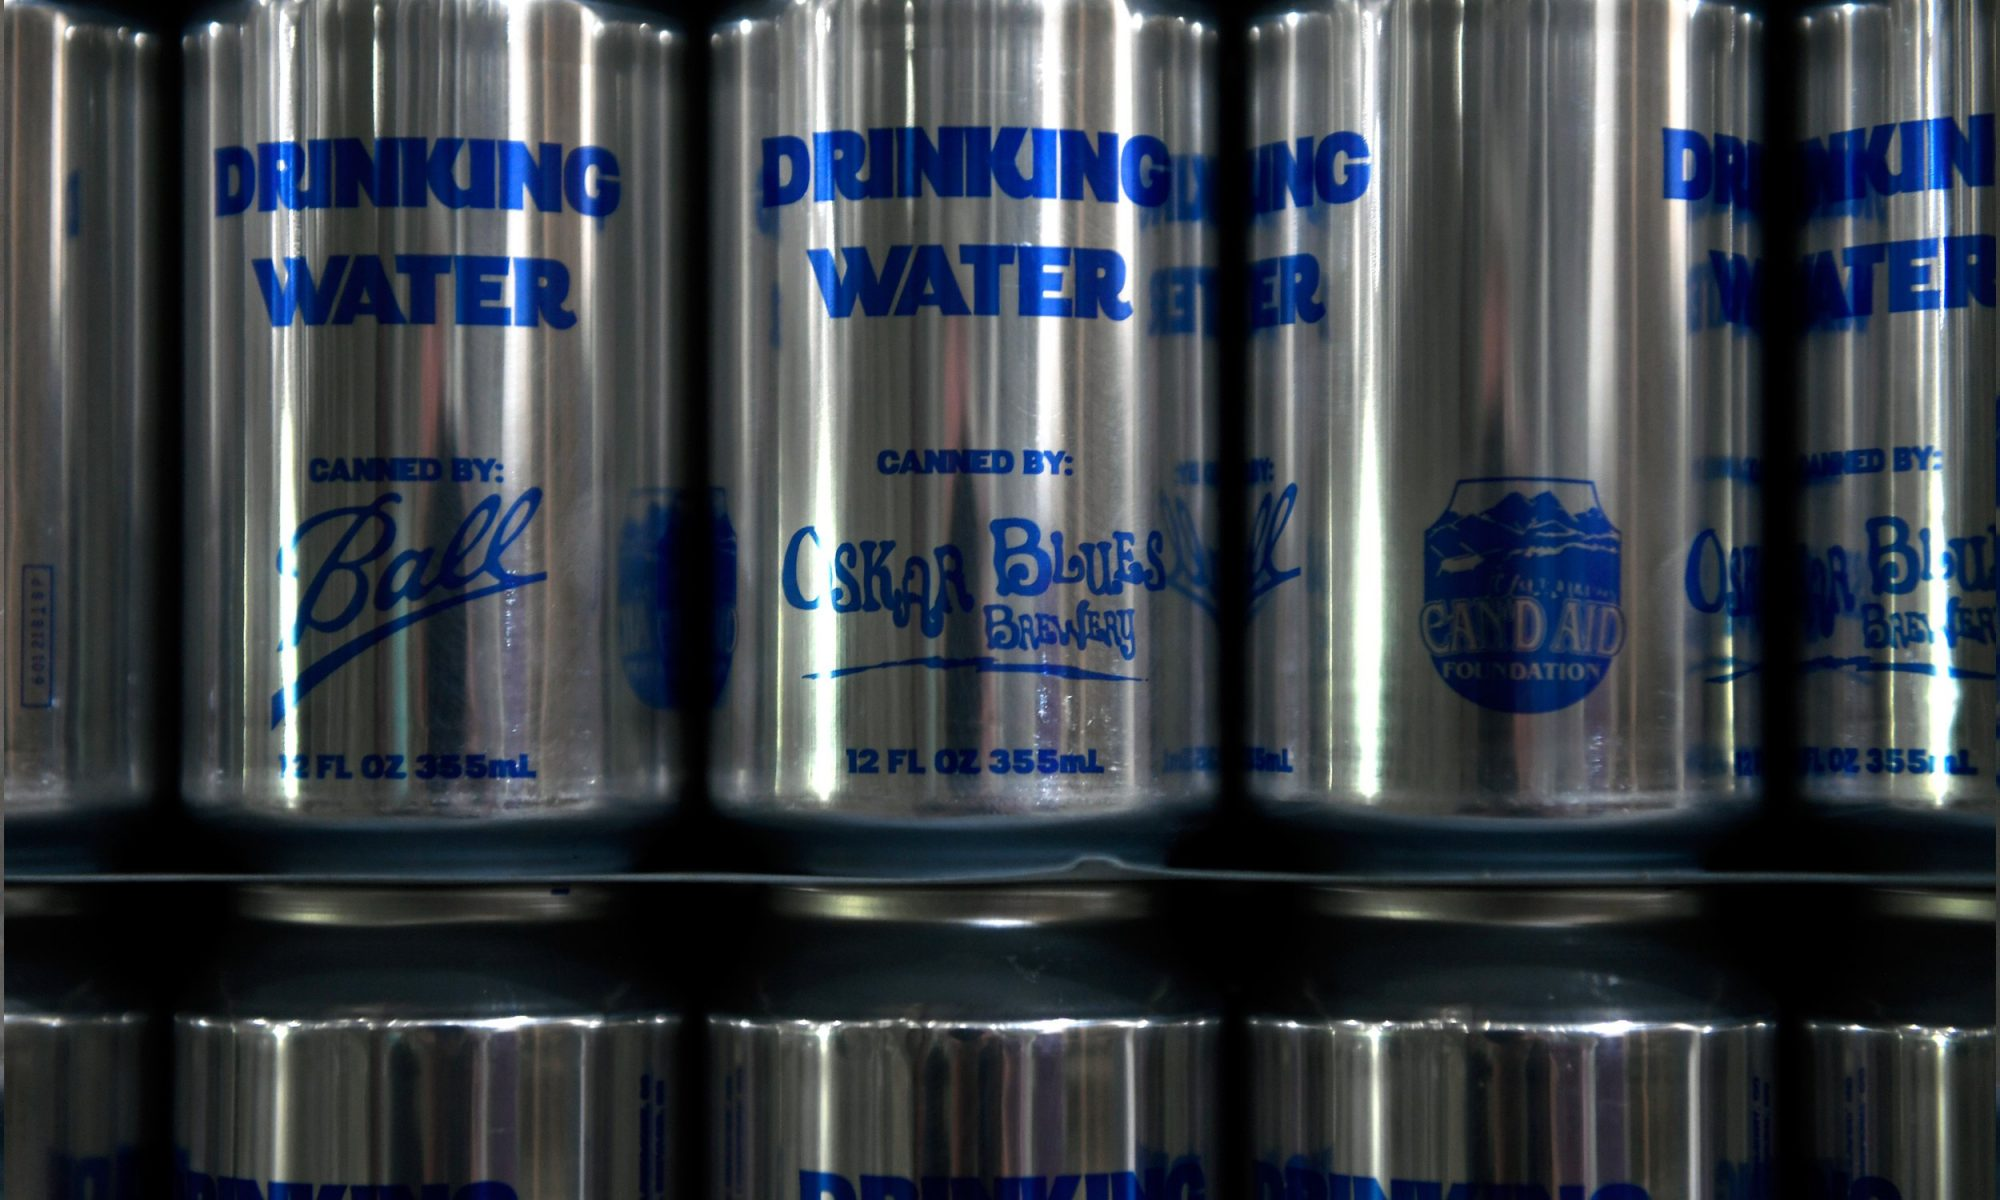 breweries water for irma